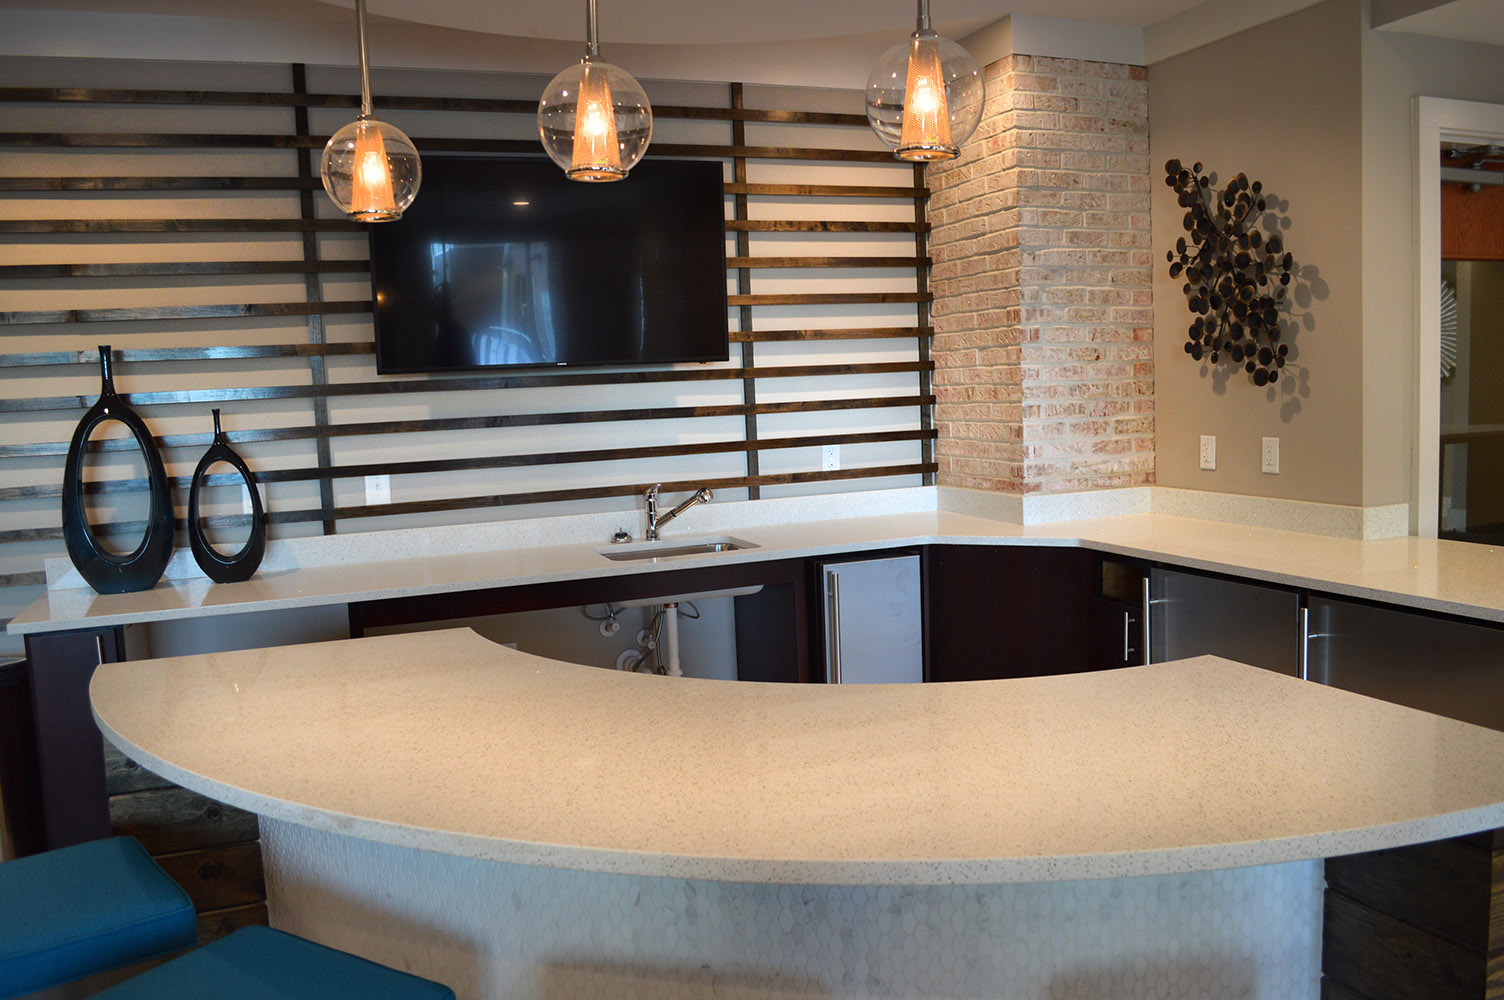 A beautiful commons area at Link apartments fitted with a beautiful White quartz curved bar and small kitchen area